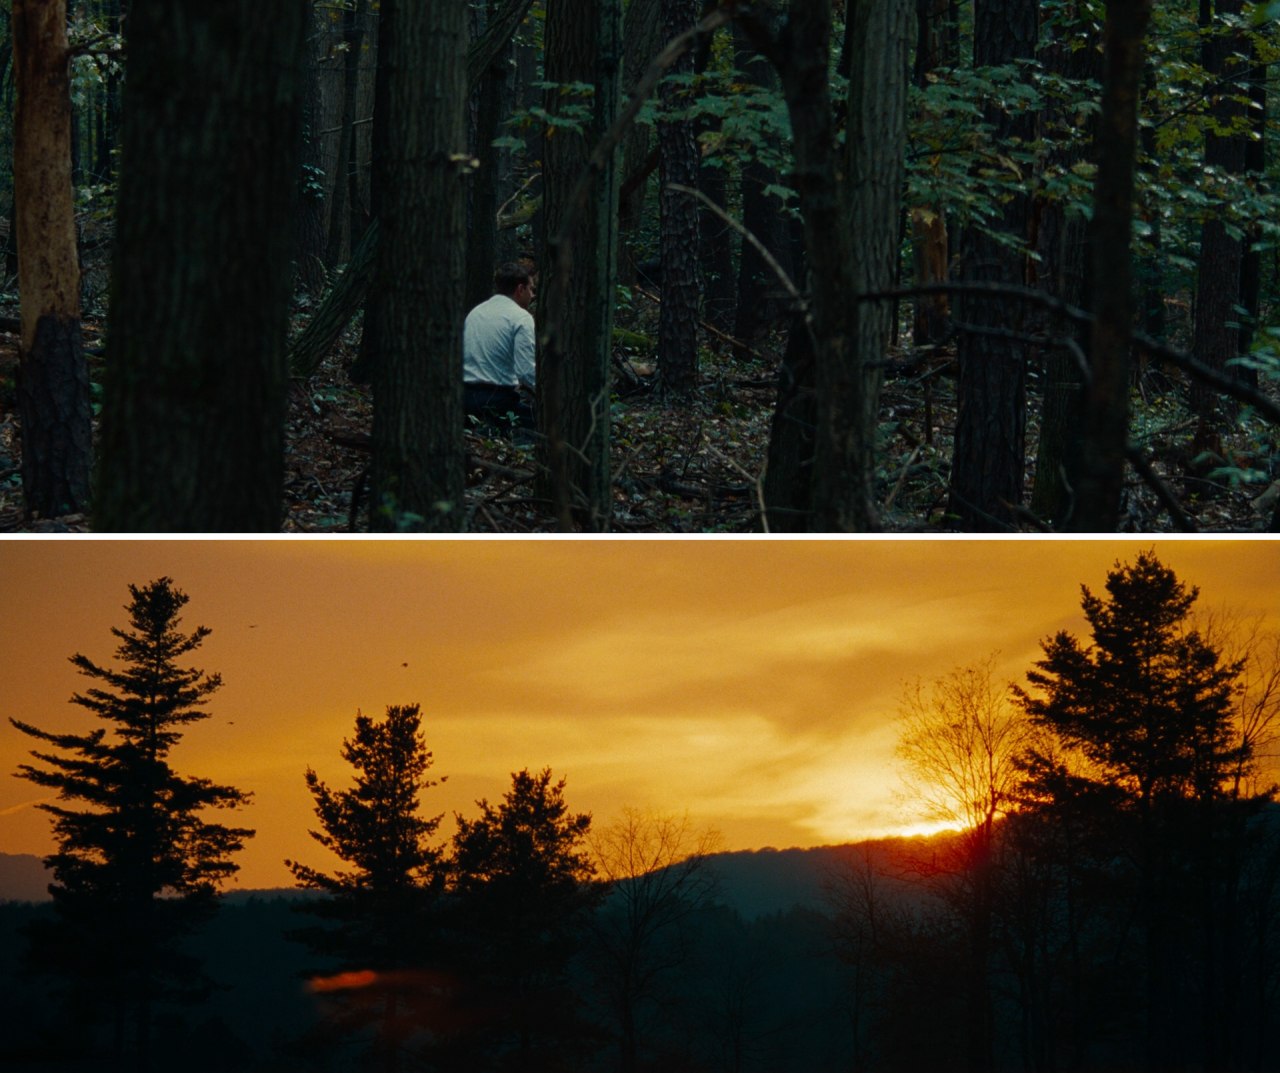 The Place Beyond The Pines Directed By Derek Cianfrance